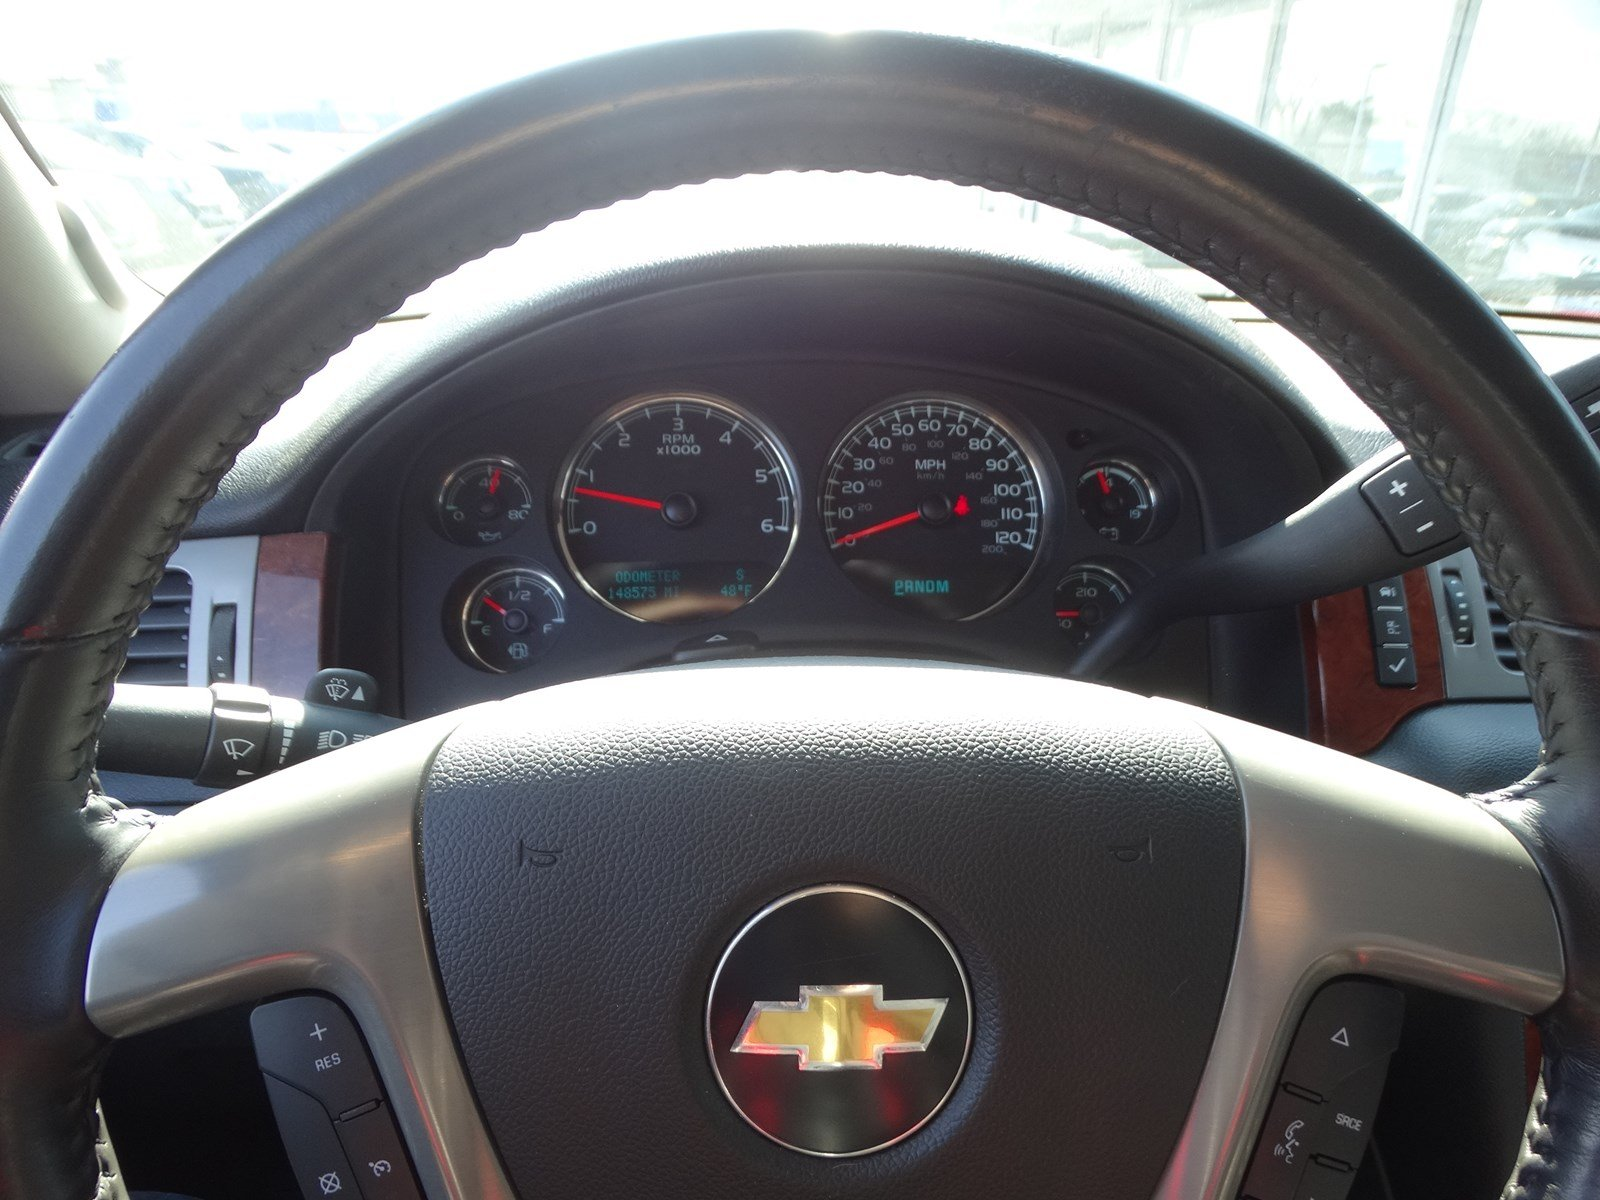 Pre-Owned 2011 Chevrolet Avalanche LS